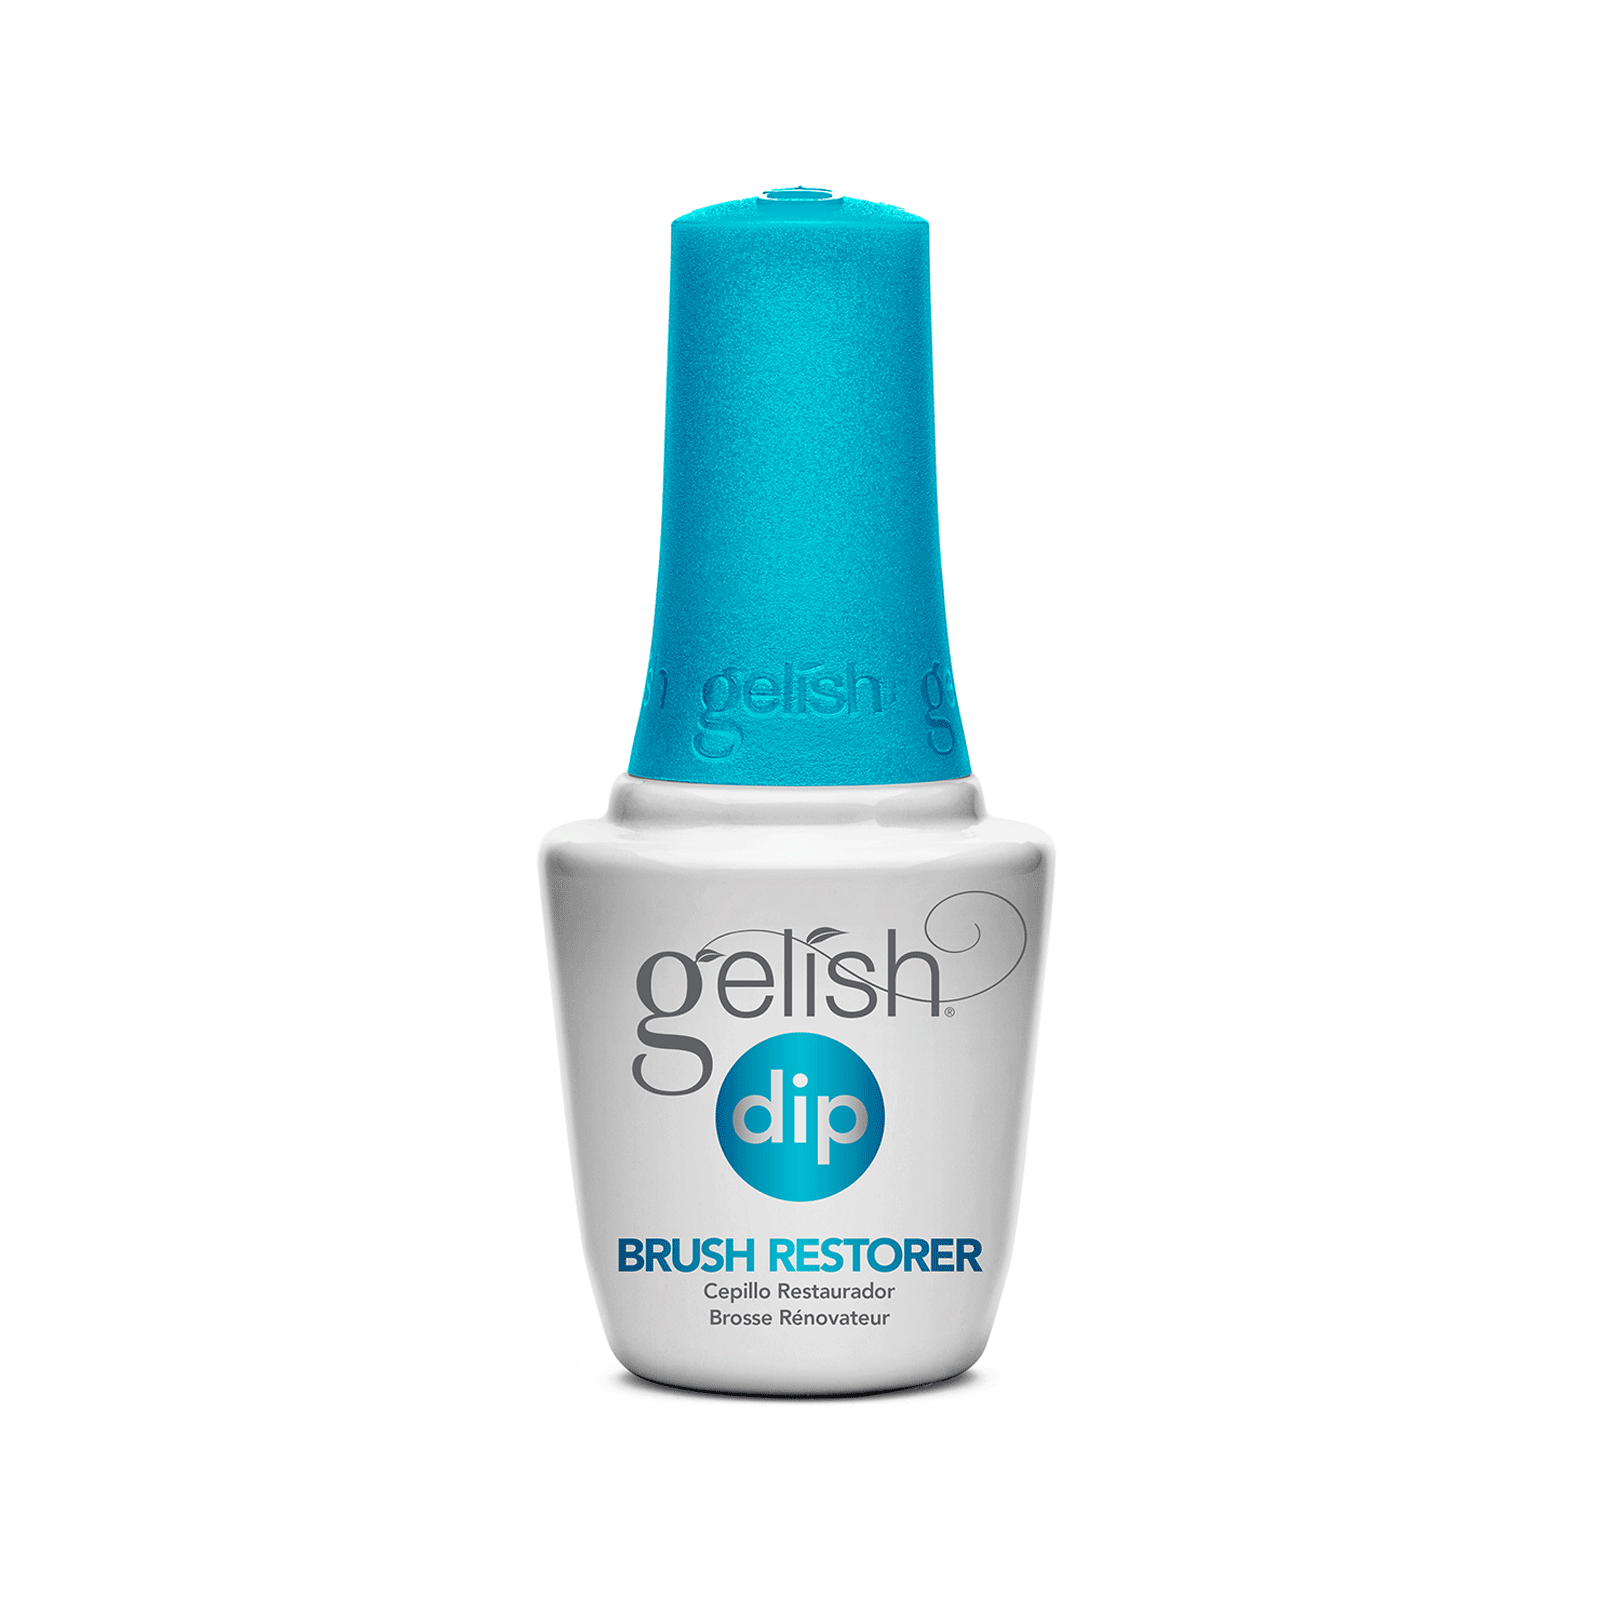 Gelish Dip - Brush Restorer